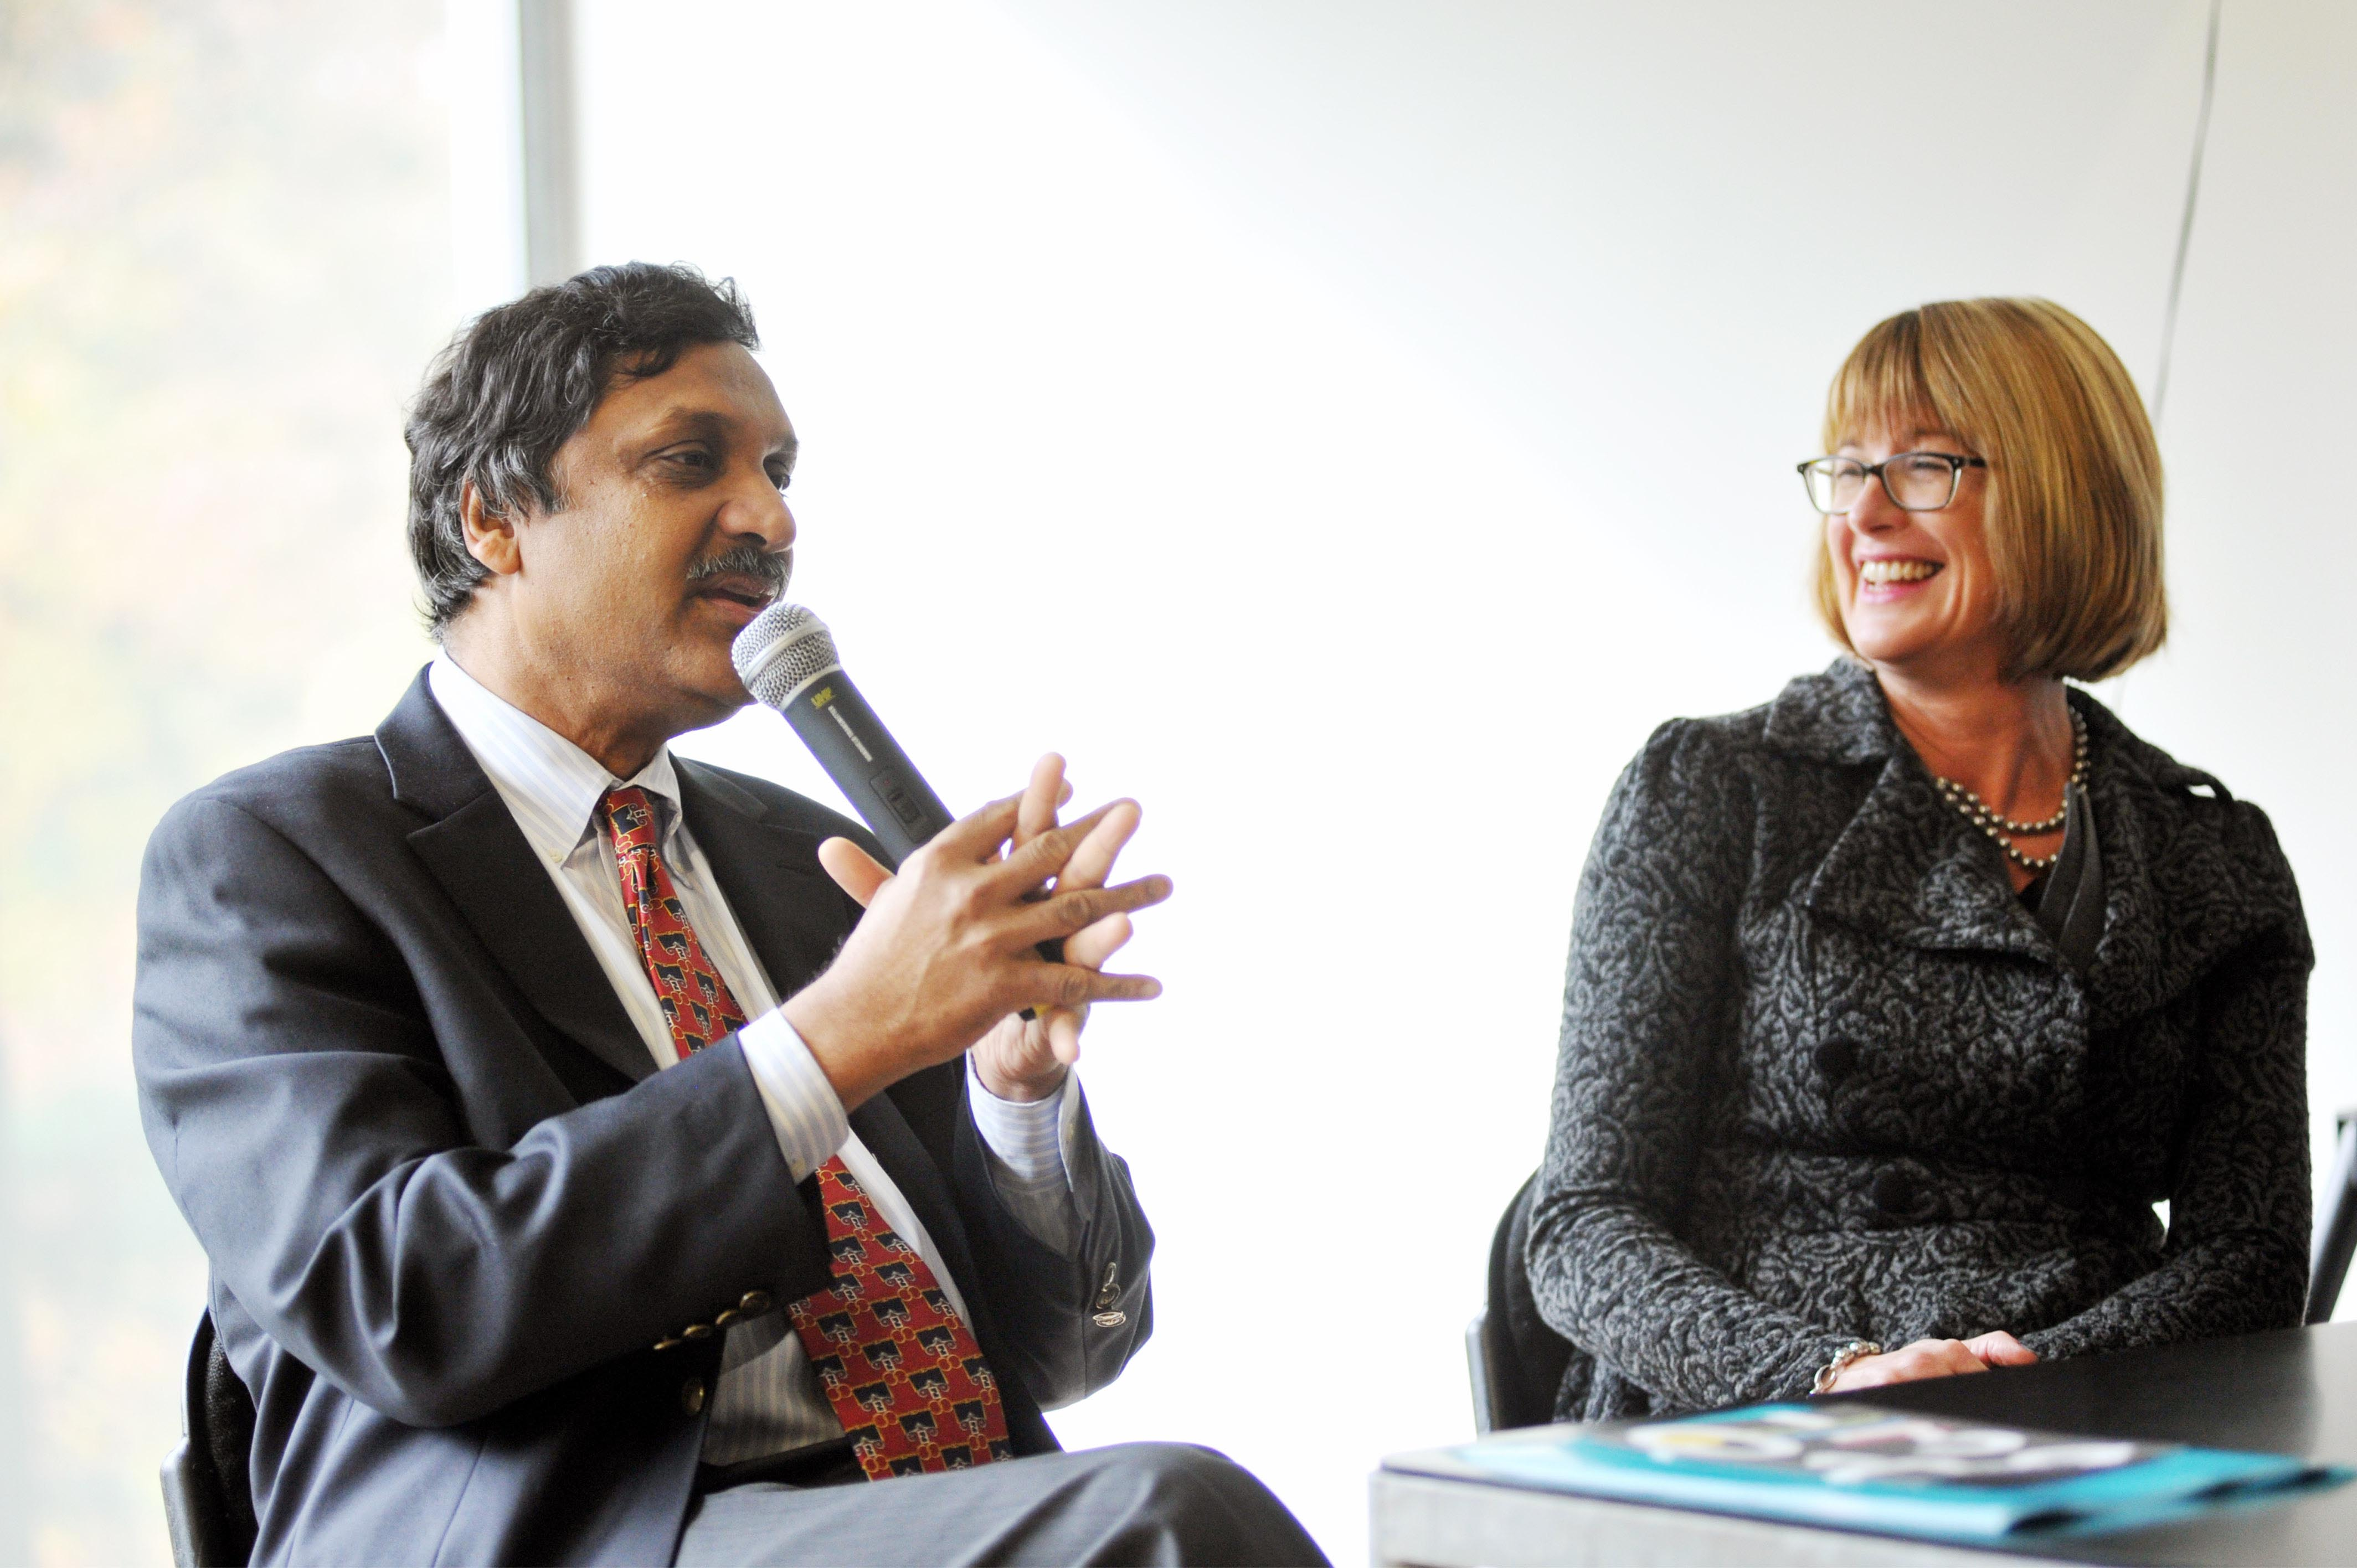 George Boole Day kicks off at UCC - Anant Agarwal, CEO of edX and Michelle Sliney, Principal of Coláiste Choilm in Ballincollig pictured in the Glucksman Gallery, UCC, Cork at a panel discussion on what George Boole means to them.